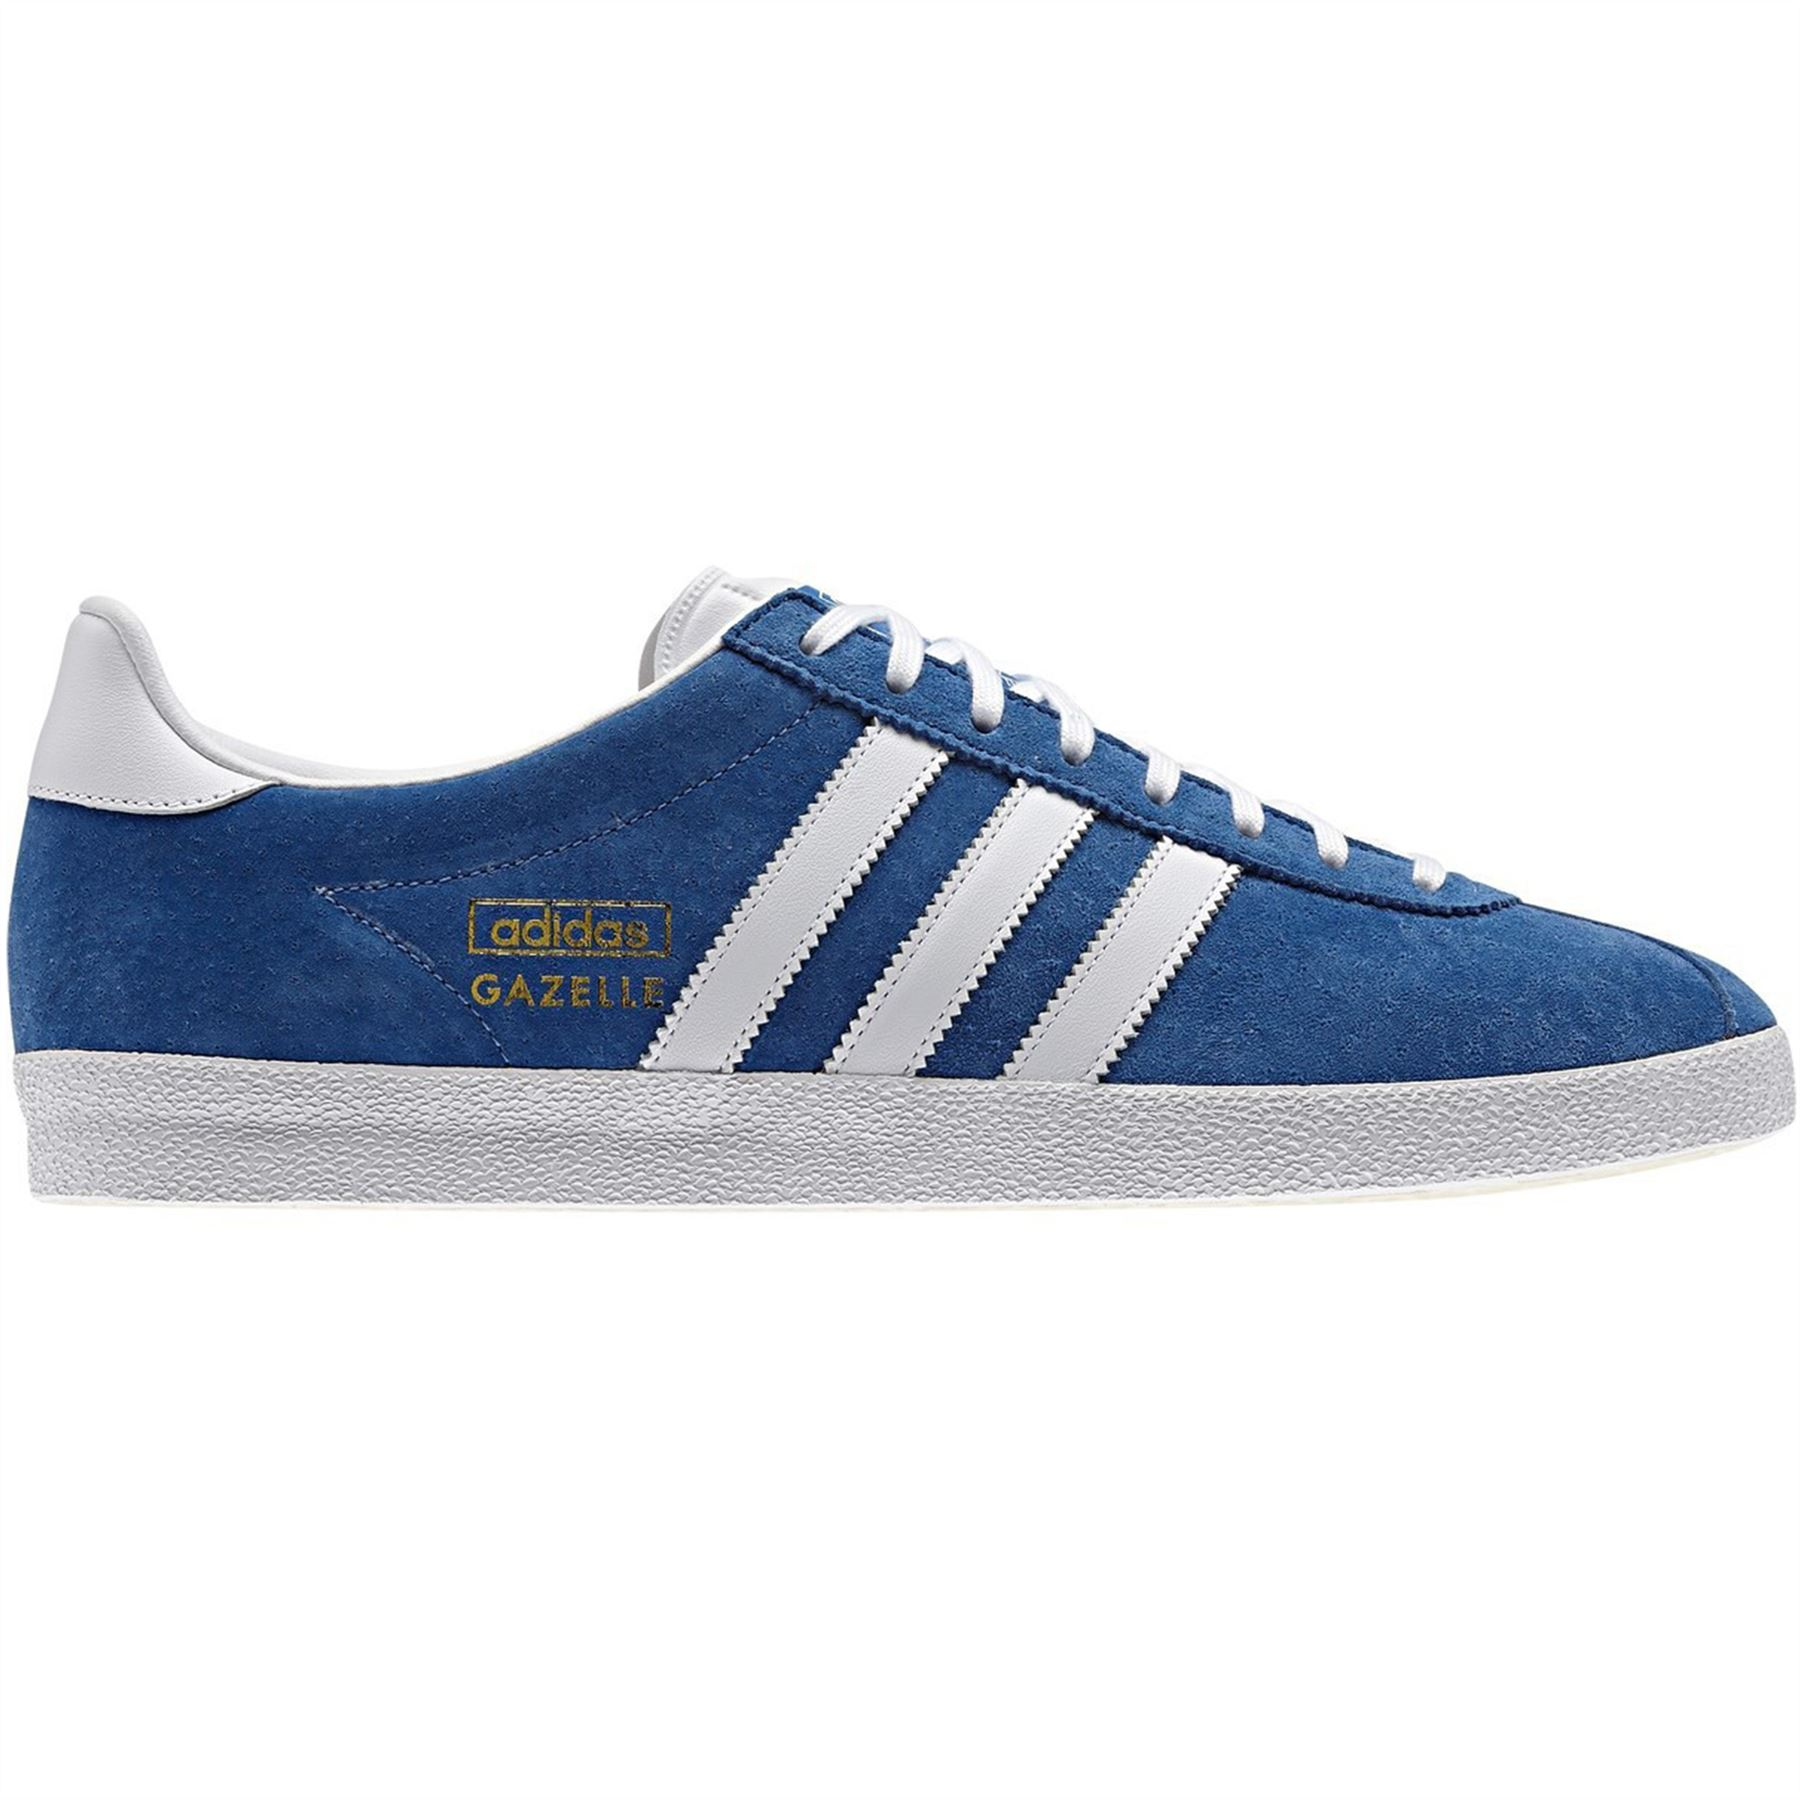 Adidas Gazelle Blue Red